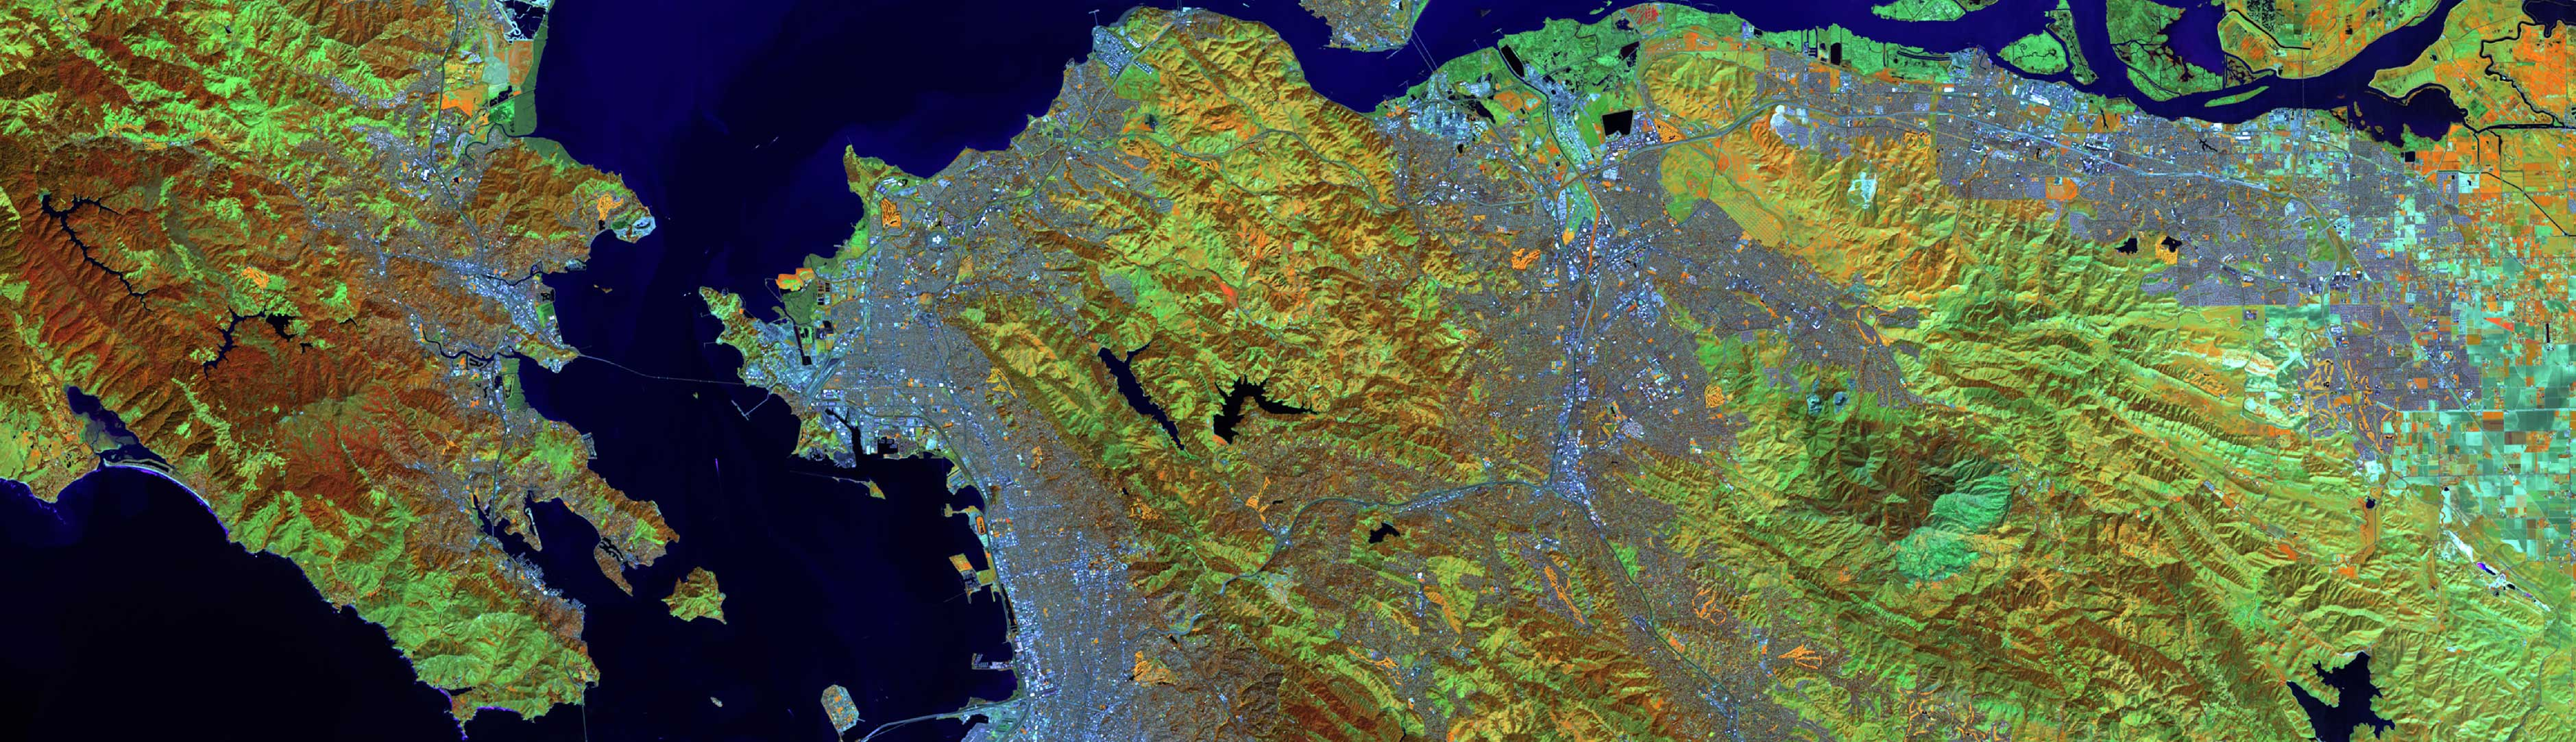 Satellite image of Bay Area from above